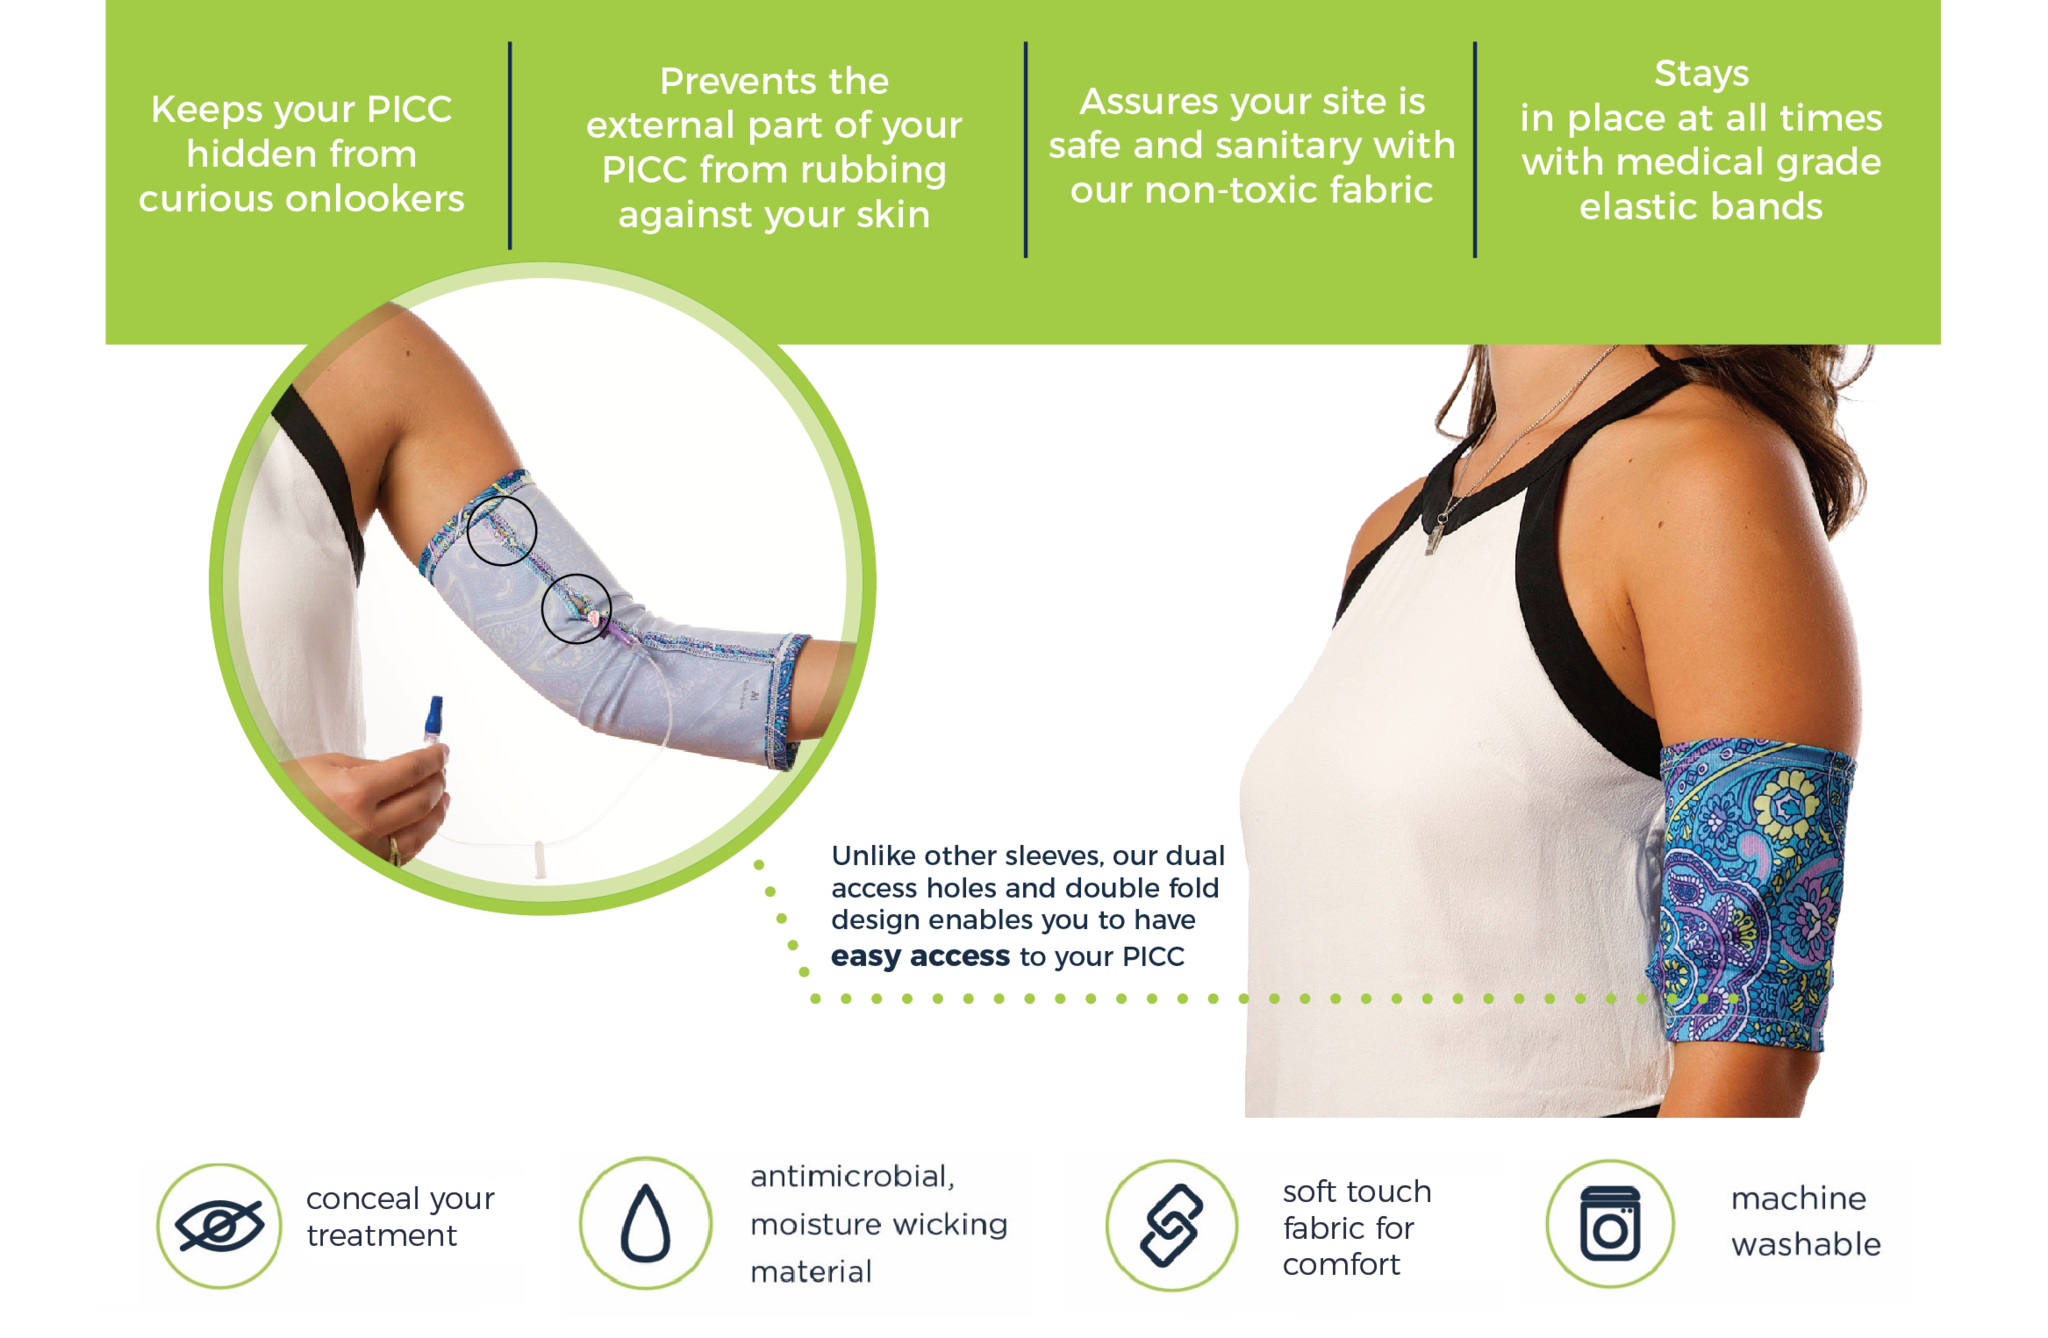 How to Protect Your PICC Line With PICCPerfect